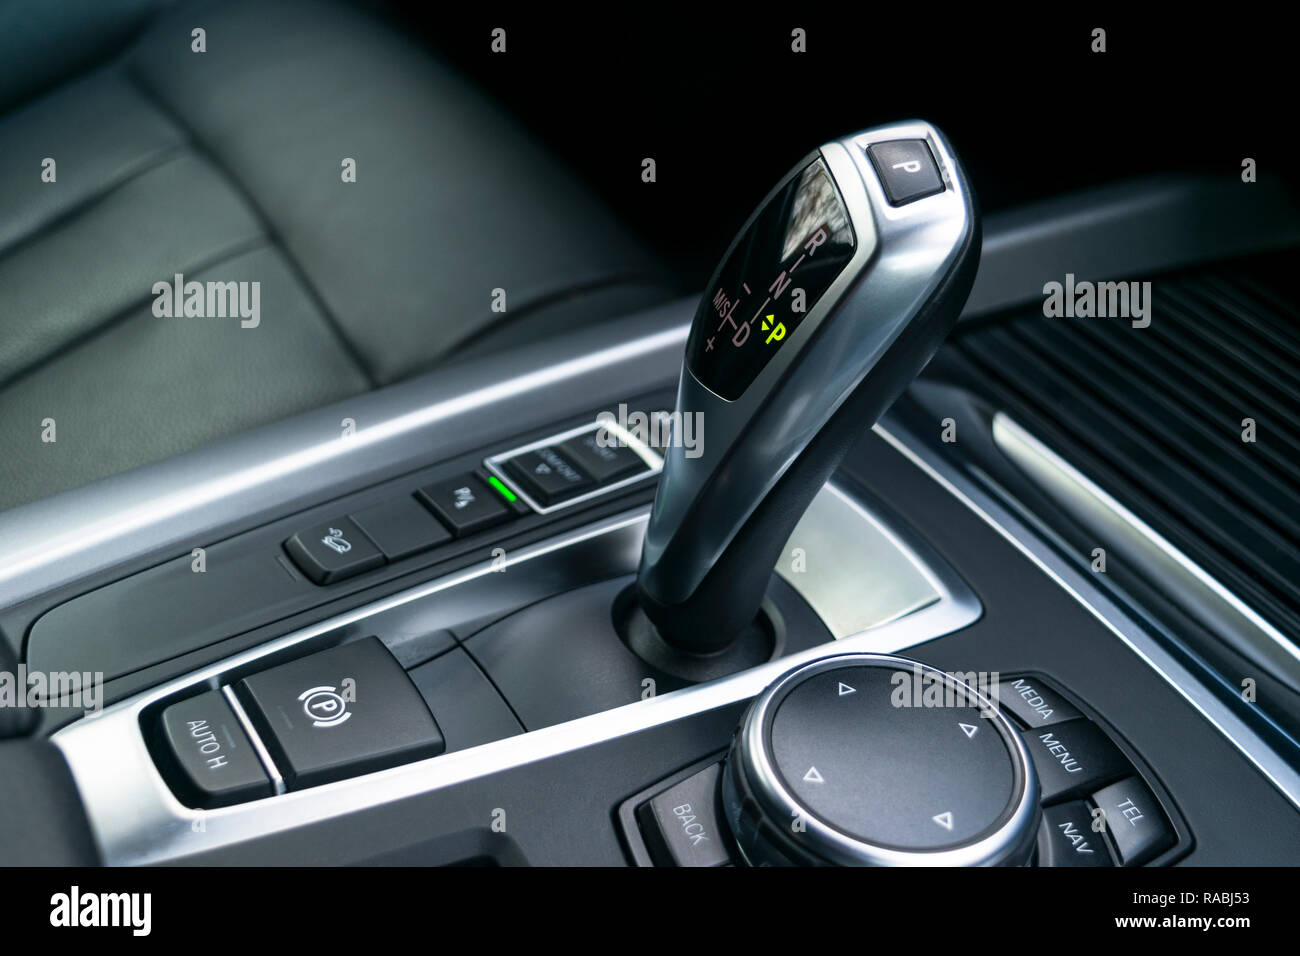 Automatic gear stick (transmission) of a modern car